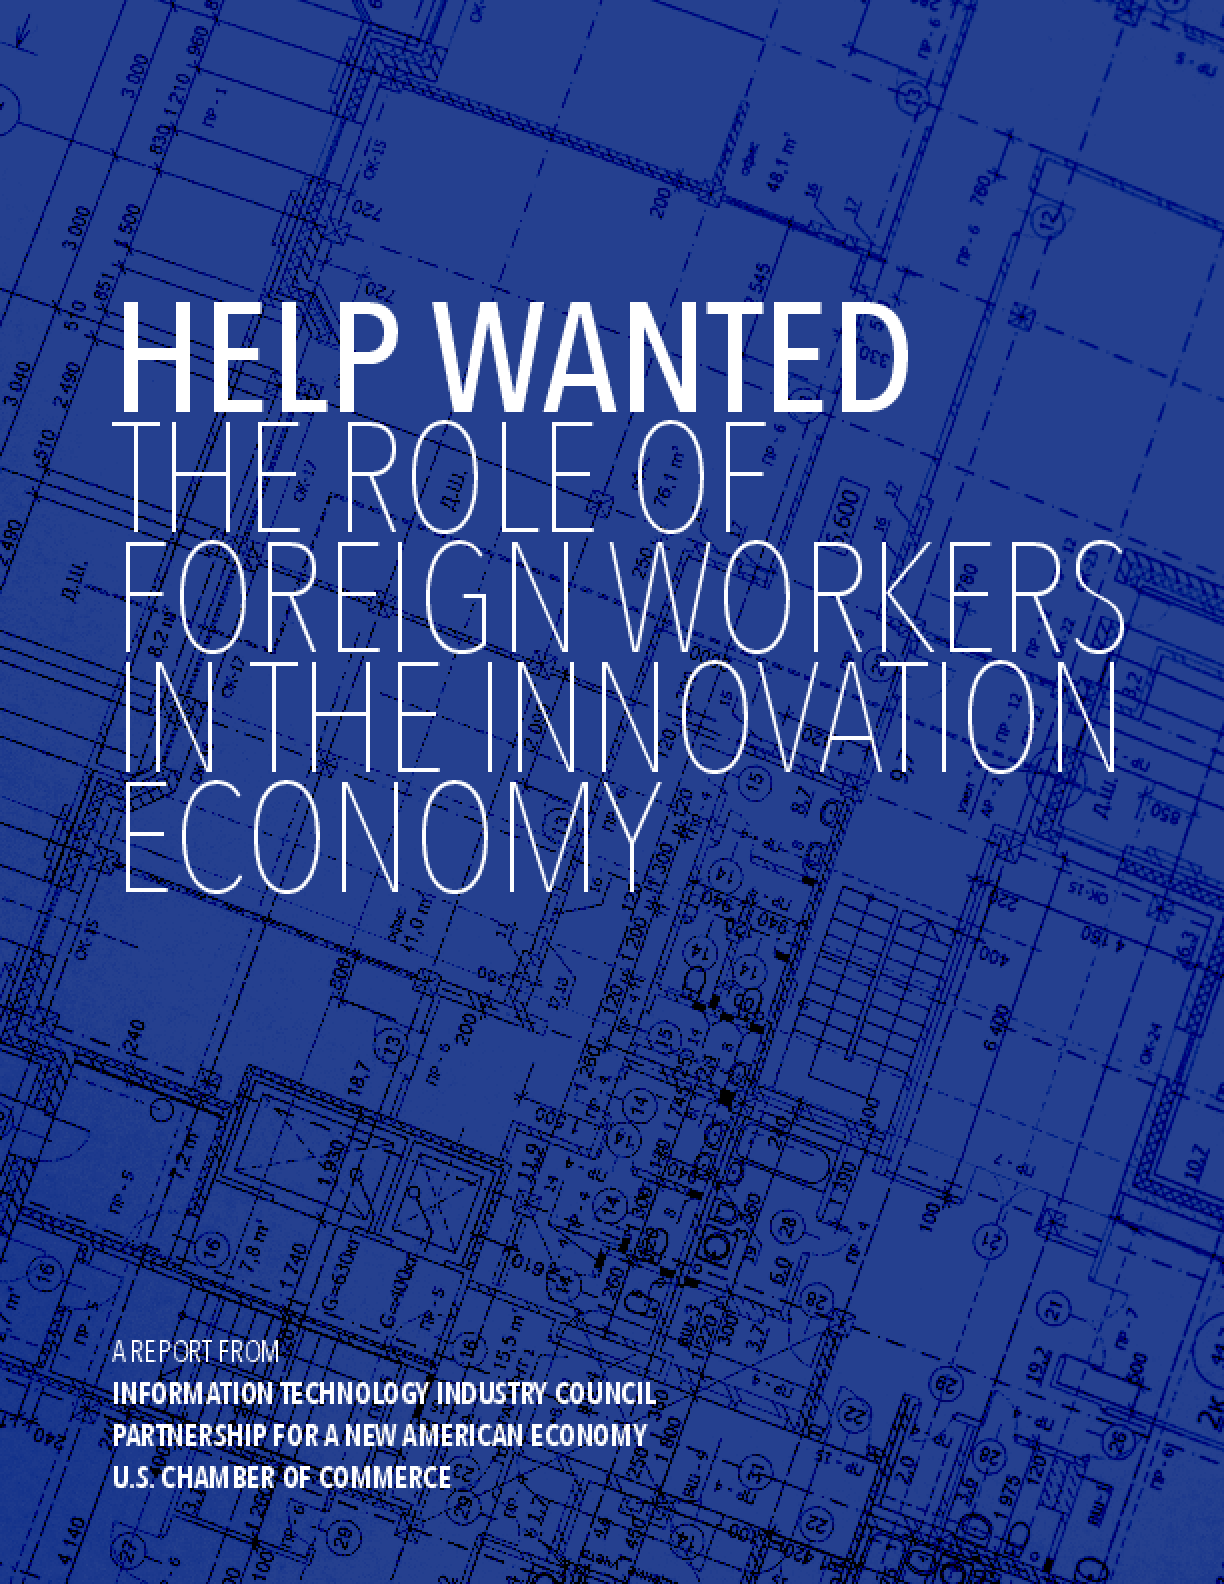 Help Wanted: The Role of Foreign Workers in the Innovation Economy